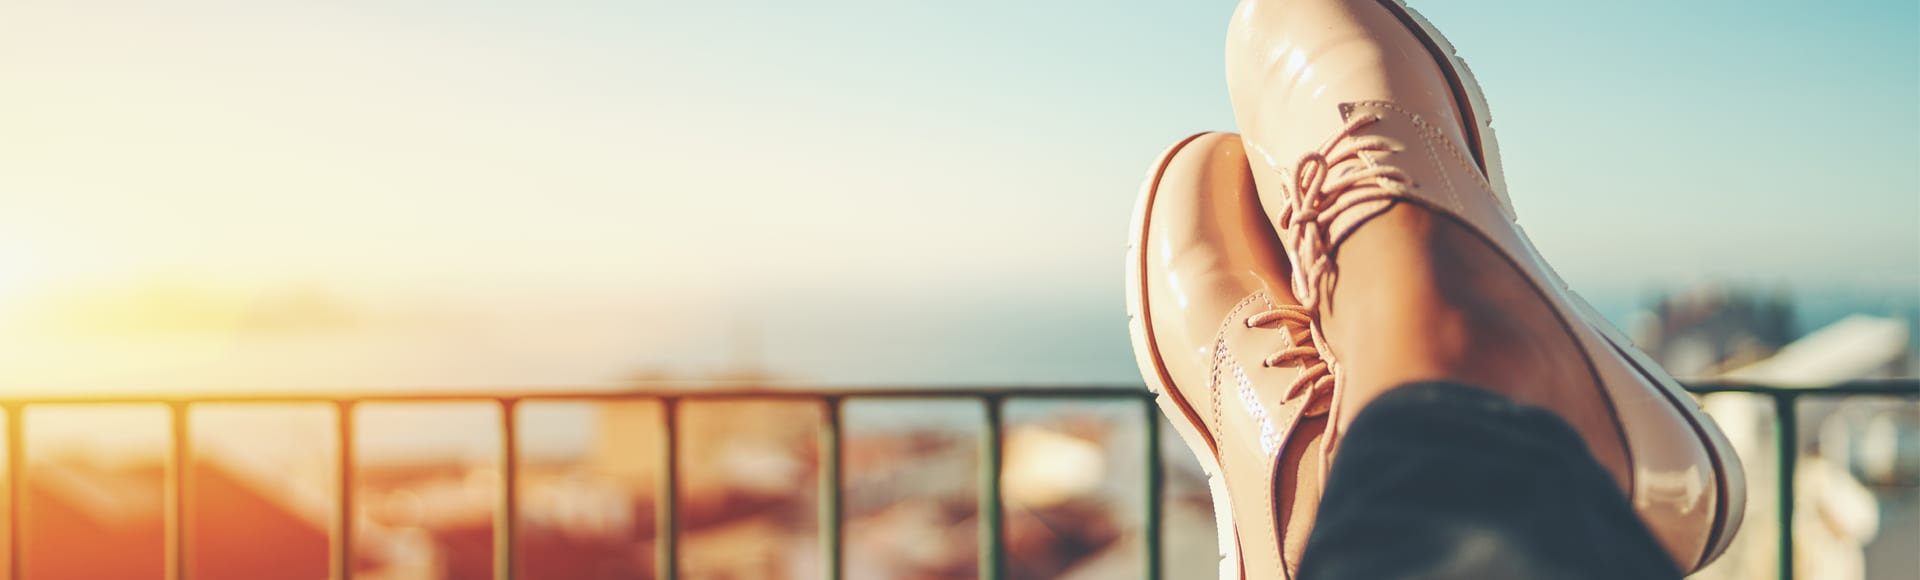 Female feet with glossy pale pink shoes relaxing on wooden table and touristic european city near sea with multiple houses in blurred background with copy space for advertising, logo or your texts